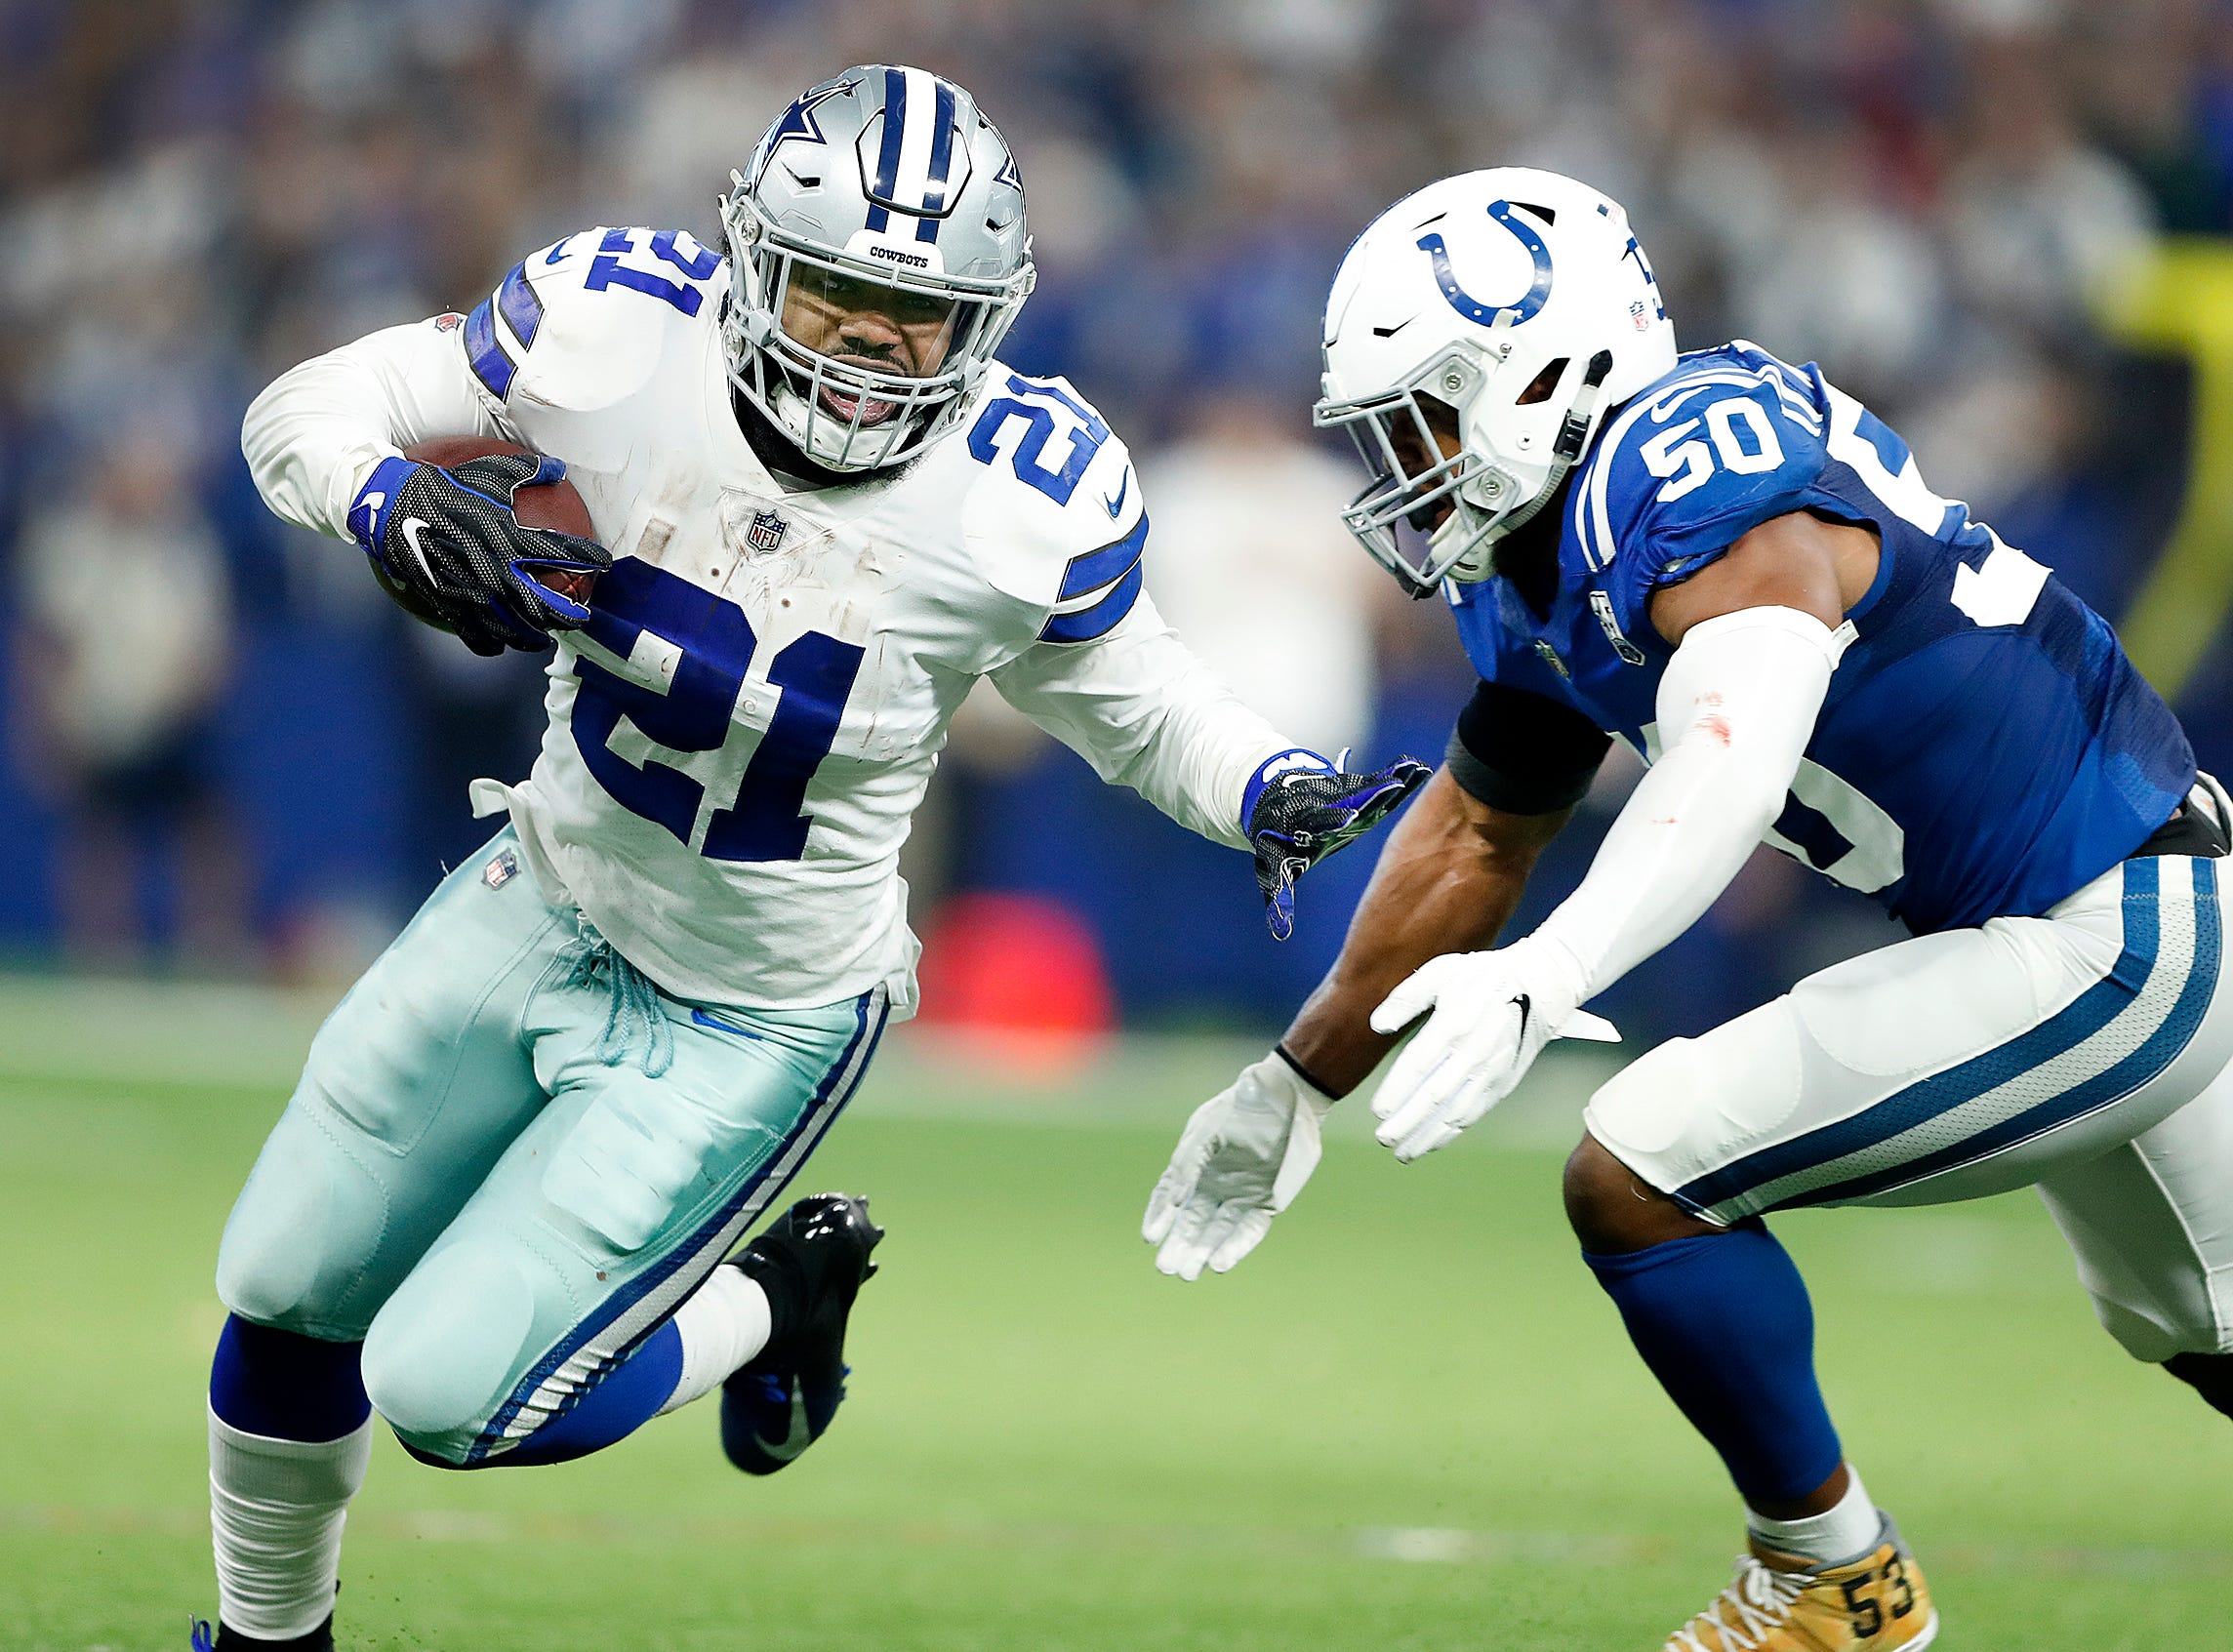 Indianapolis Colts middle linebacker Anthony Walker (50) closes in for the tackle on Dallas Cowboys running back Ezekiel Elliott (21)  in the first half of their game at Lucas Oil Stadium on Sunday, Dec. 16, 2018.